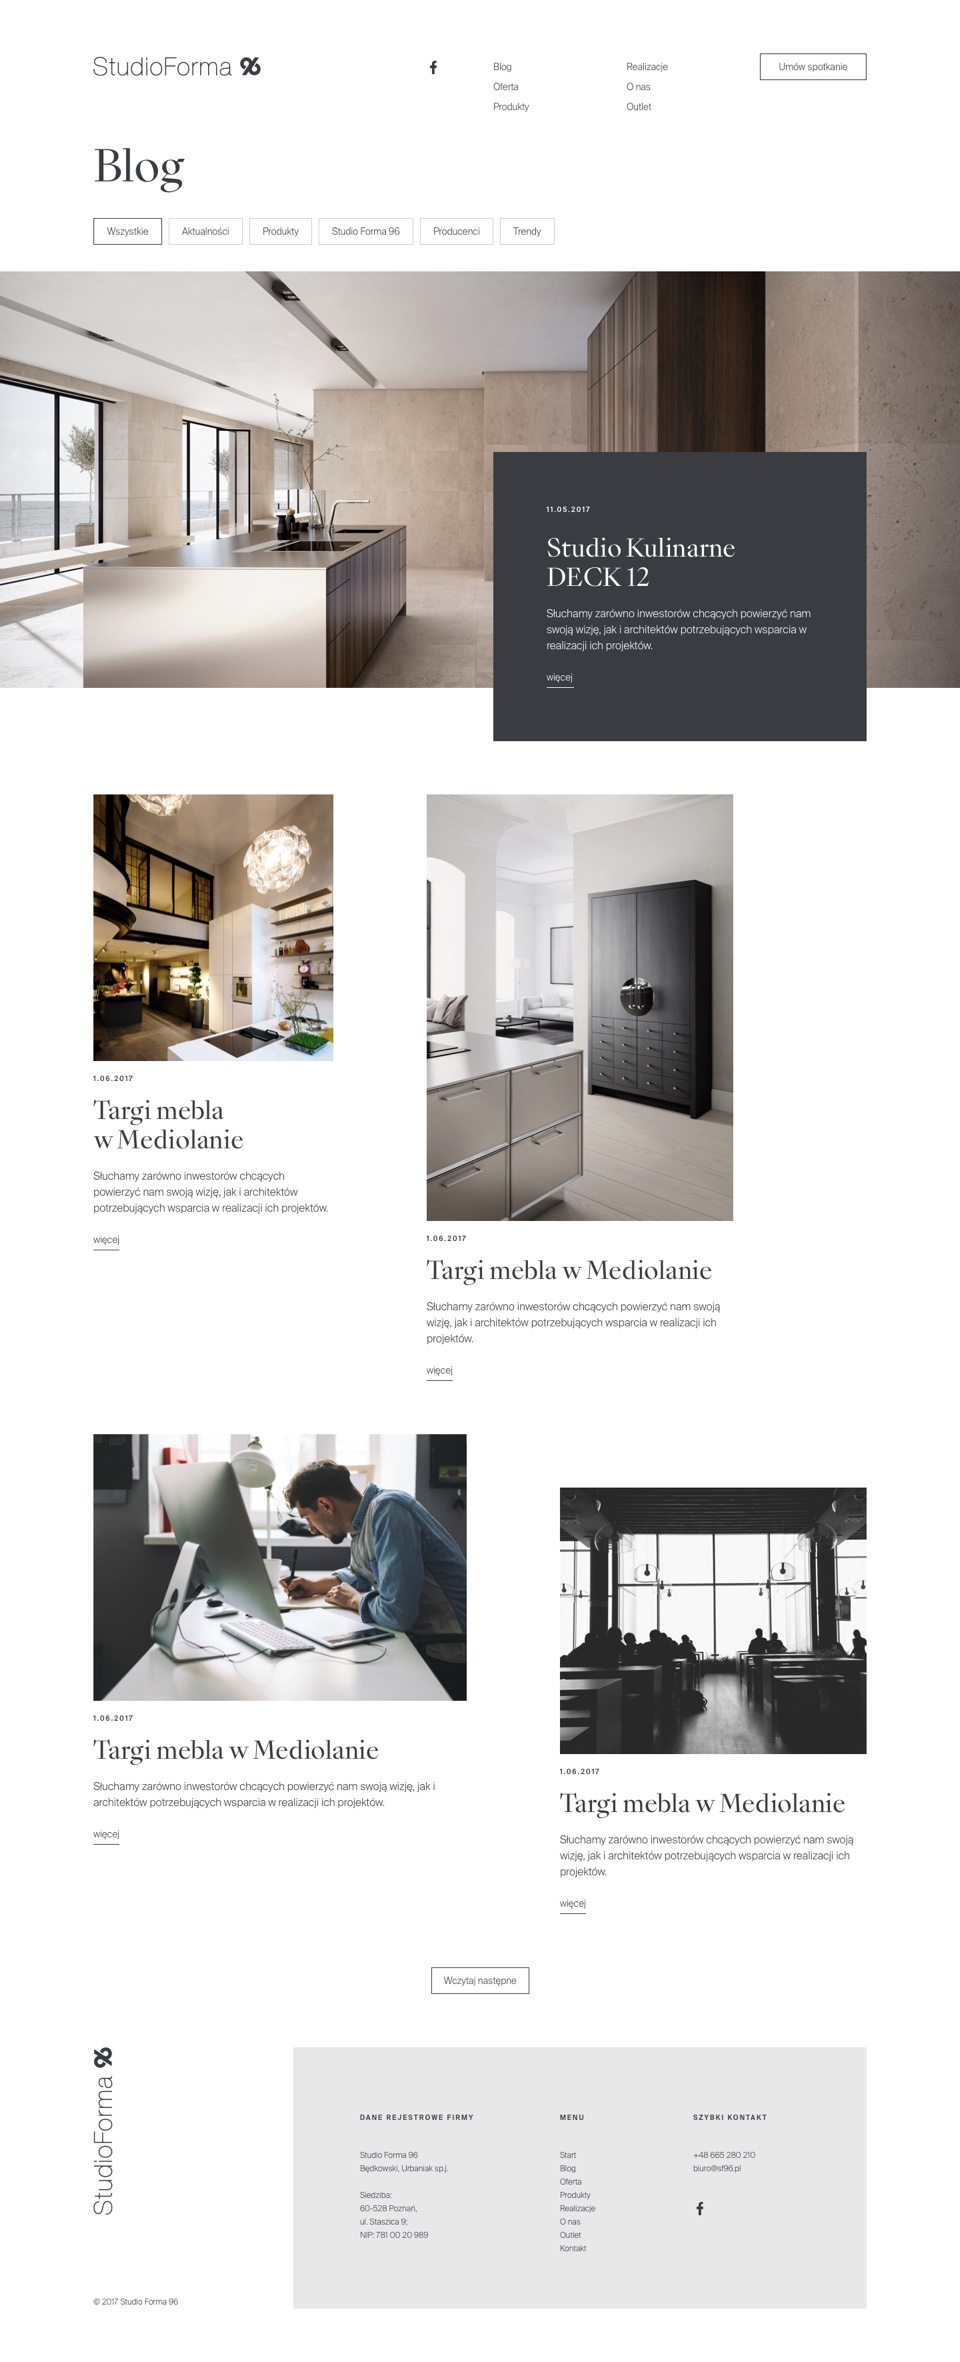 Blog - web design -  StudioForma 96 by Uniforma